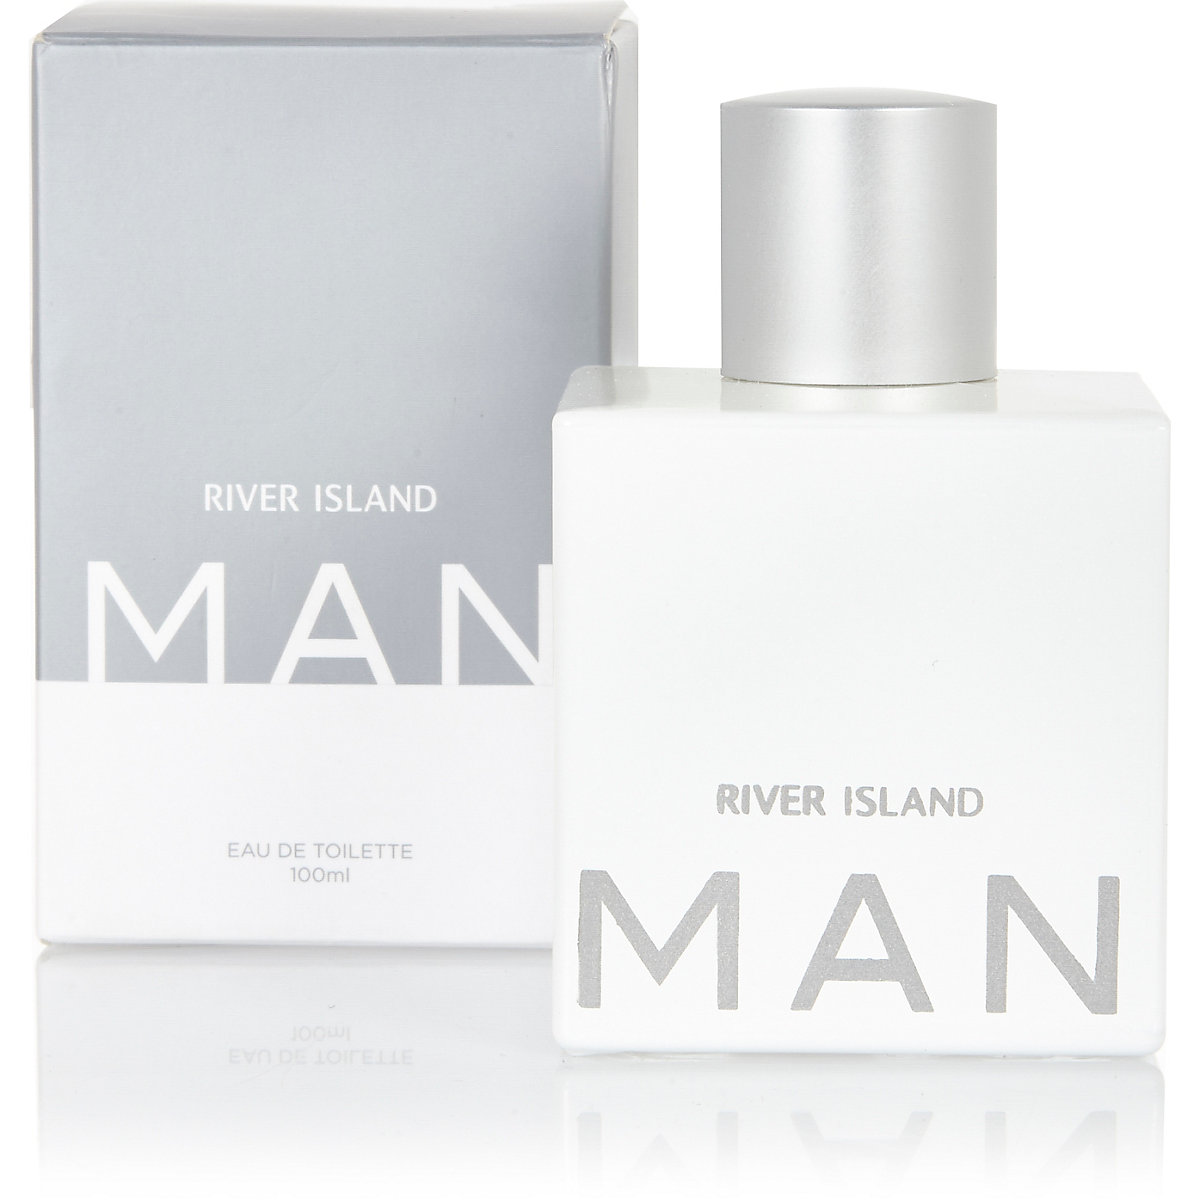 MAN eau de toilette geurtje 100 ml